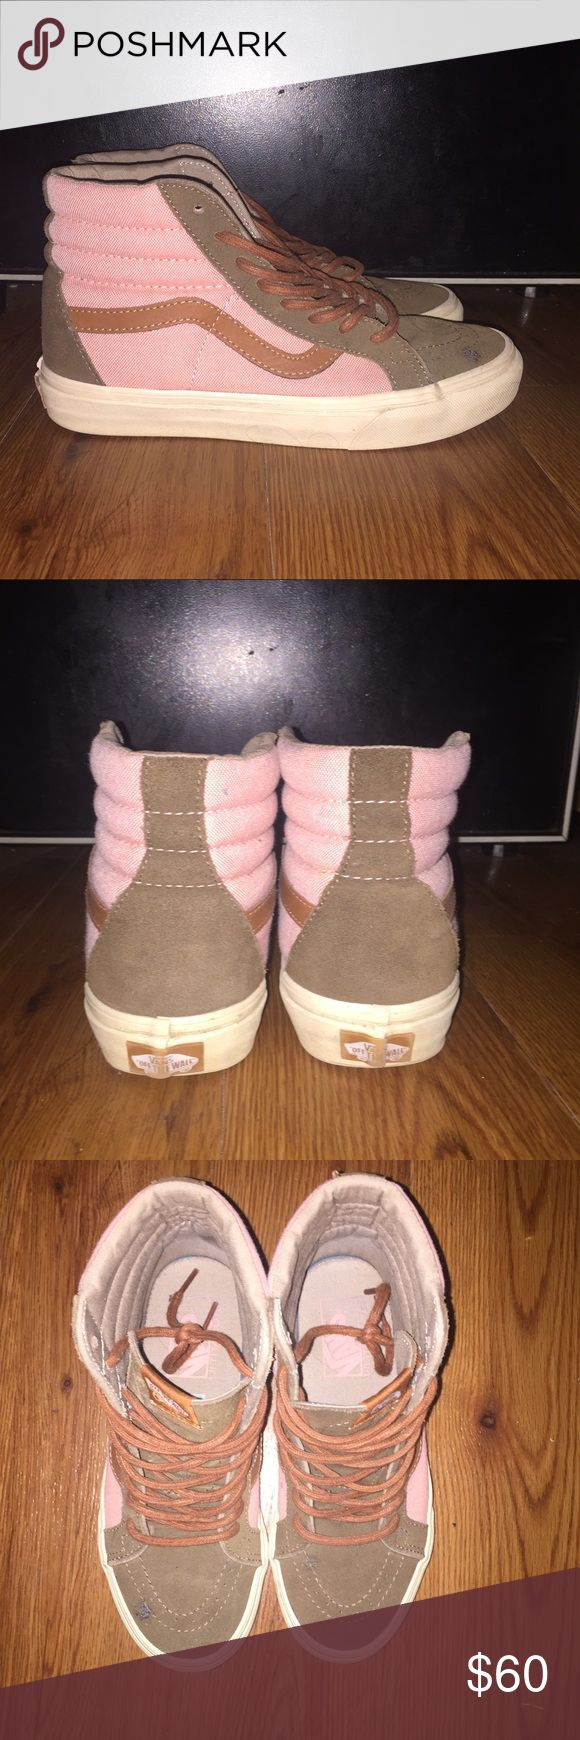 Vans Sk8 Hi Light pink/olive suede sk8 hi's with a brown leather accent and brown laces! Great condition, worn three times. Very little evidence of wearing. Super comfortable and very cute! Vans Shoes Sneakers